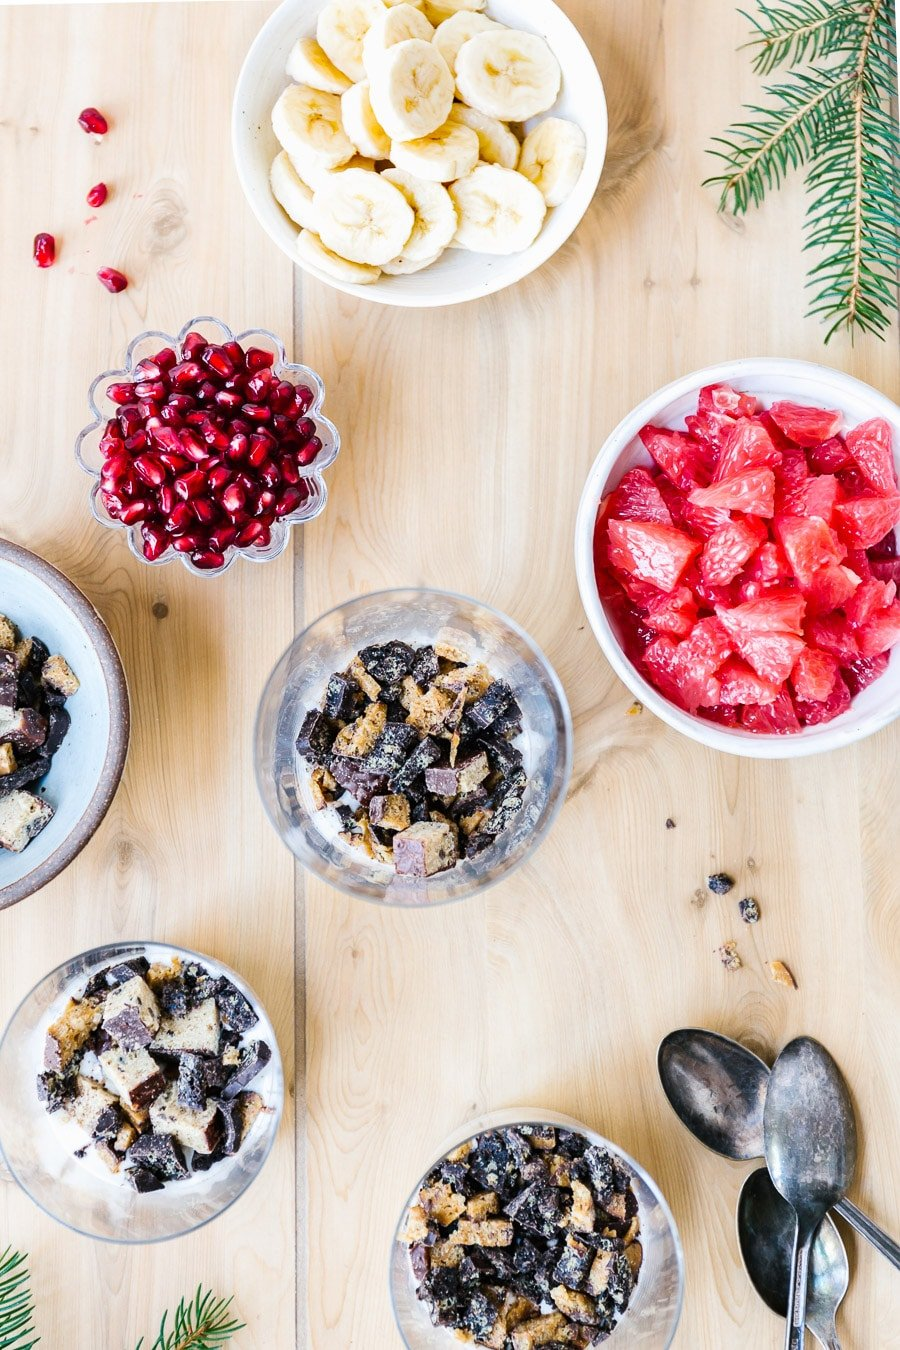 Ingredients of layered yogurt parfait are laid out